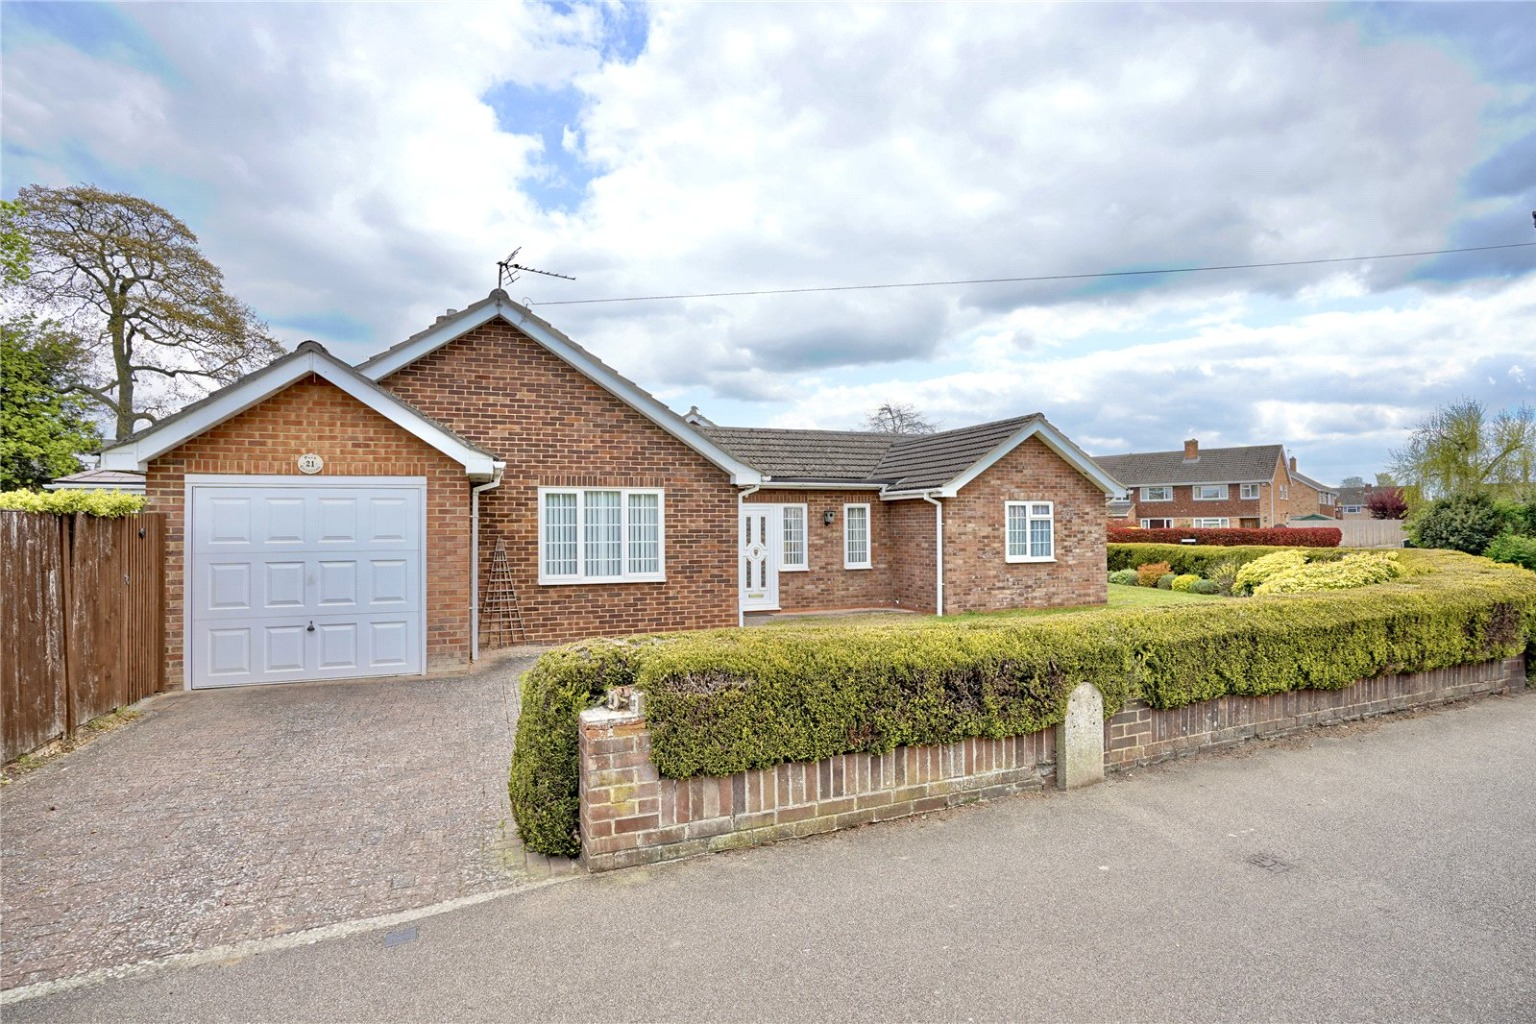 2 bed  for sale in Park Crescent, St. Neots, PE19